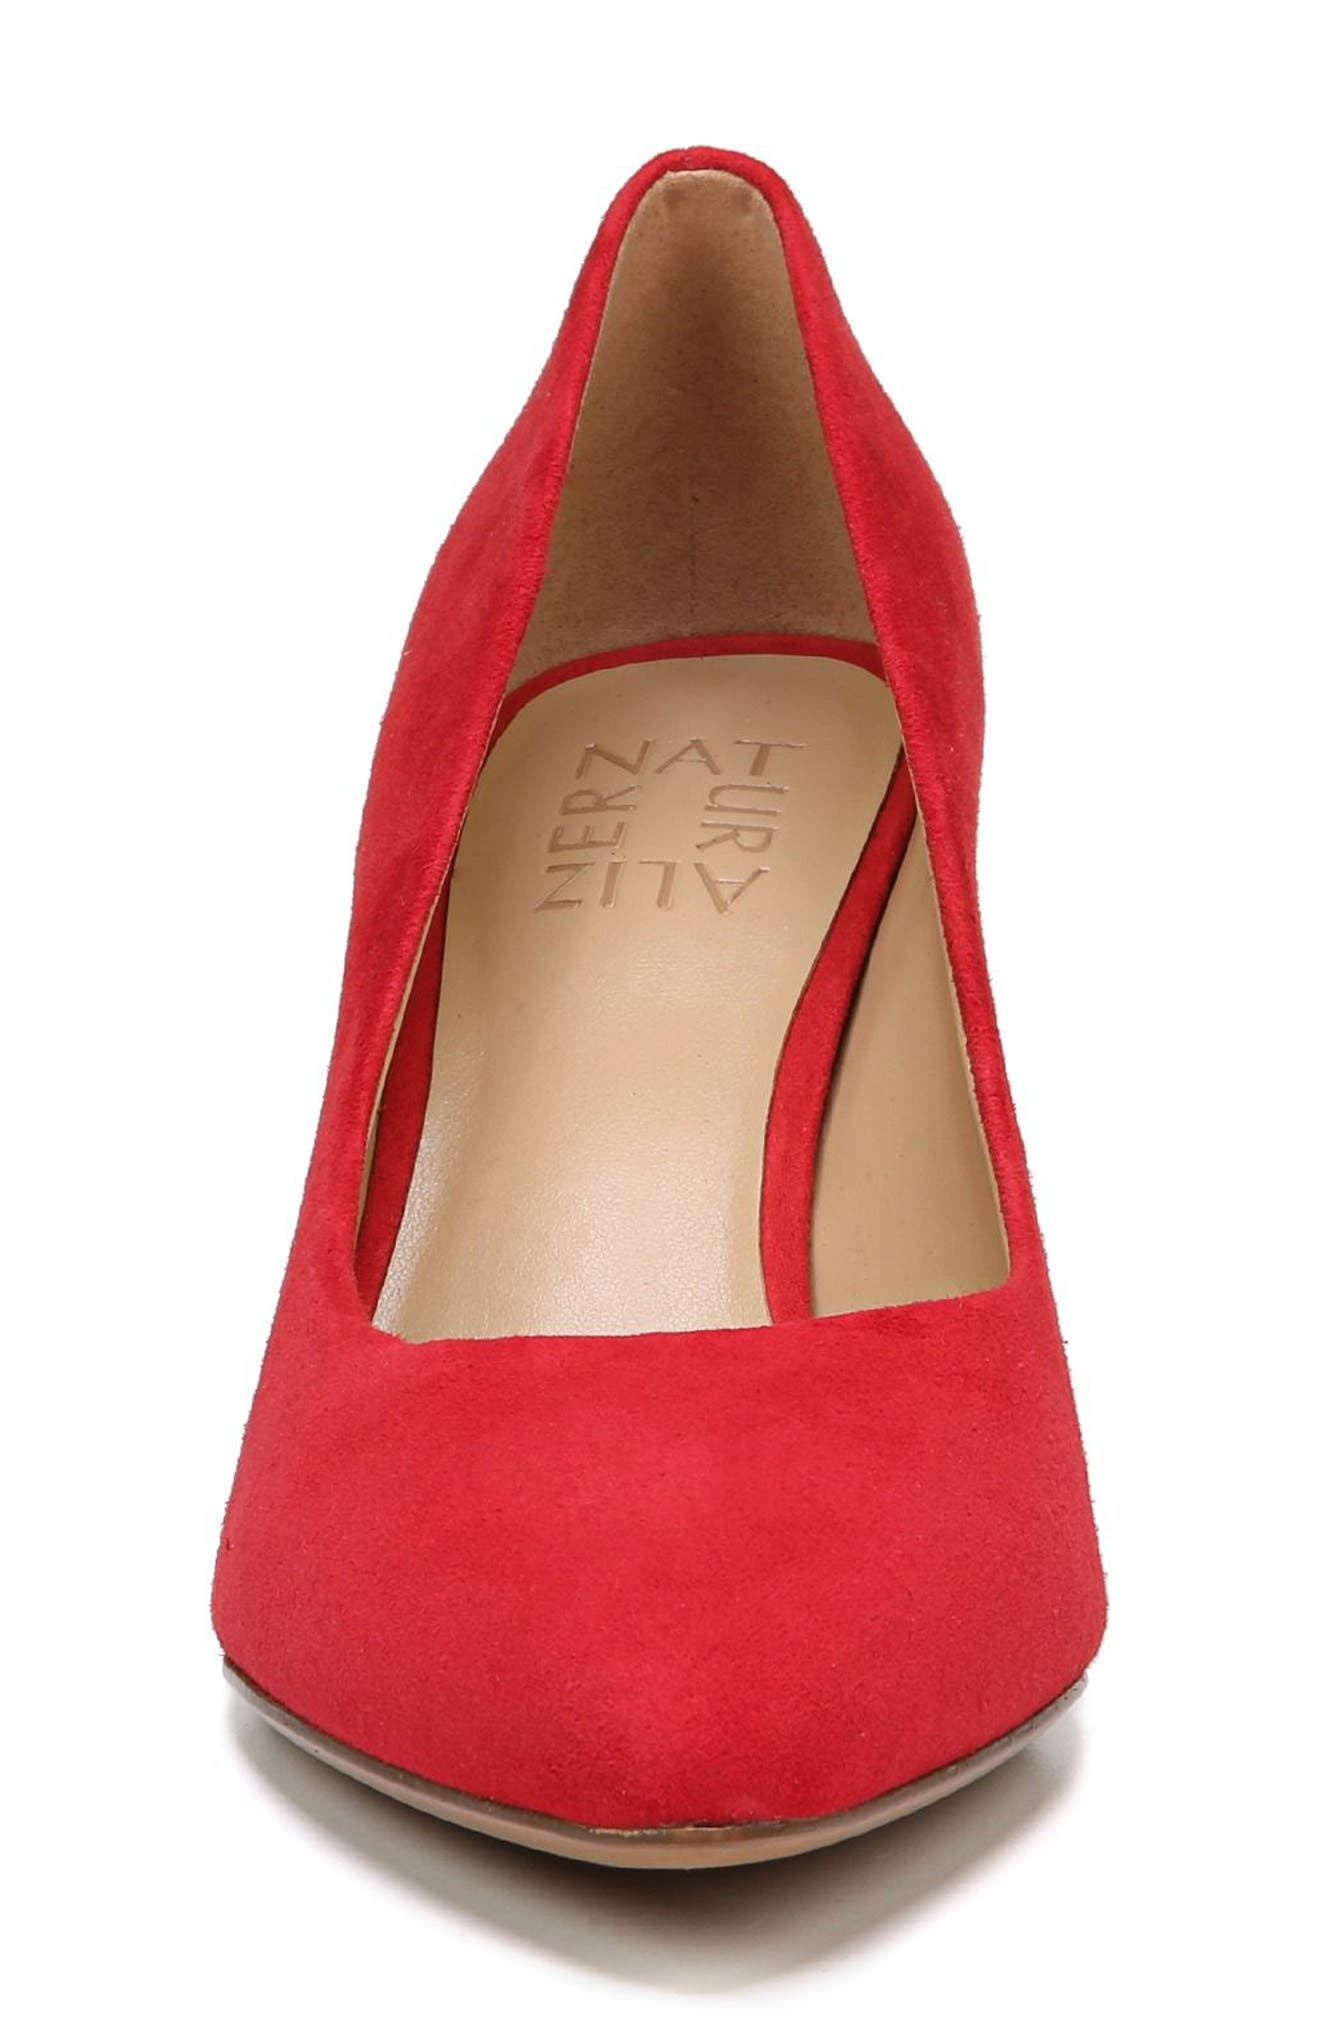 NATURALIZER, Natalie Pointy Toe Pump, Alternate thumbnail 4, color, RED SUEDE